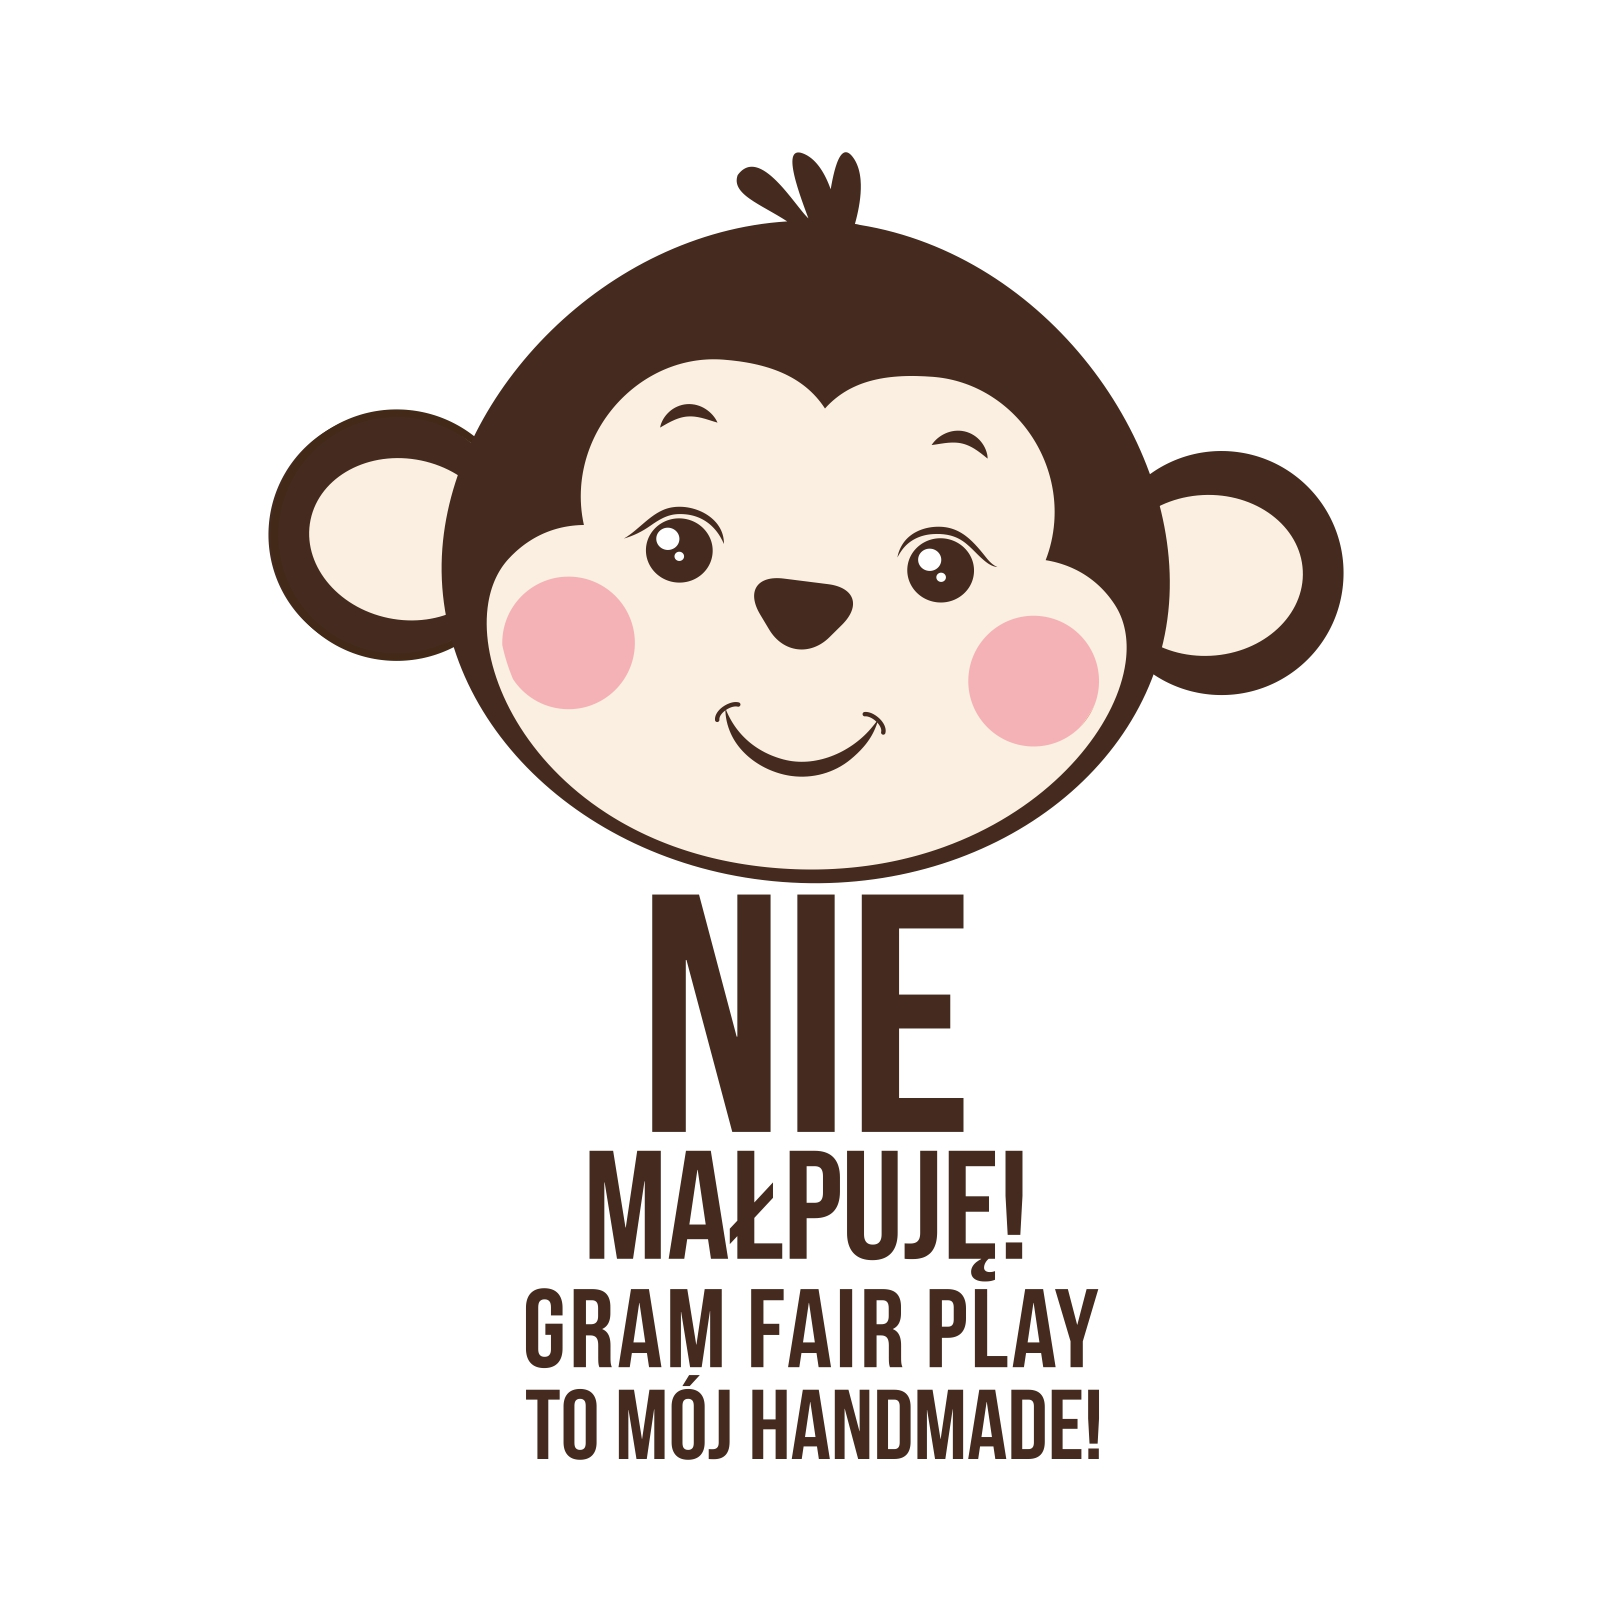 LOGO_GRAM FAIR PLAY RGB